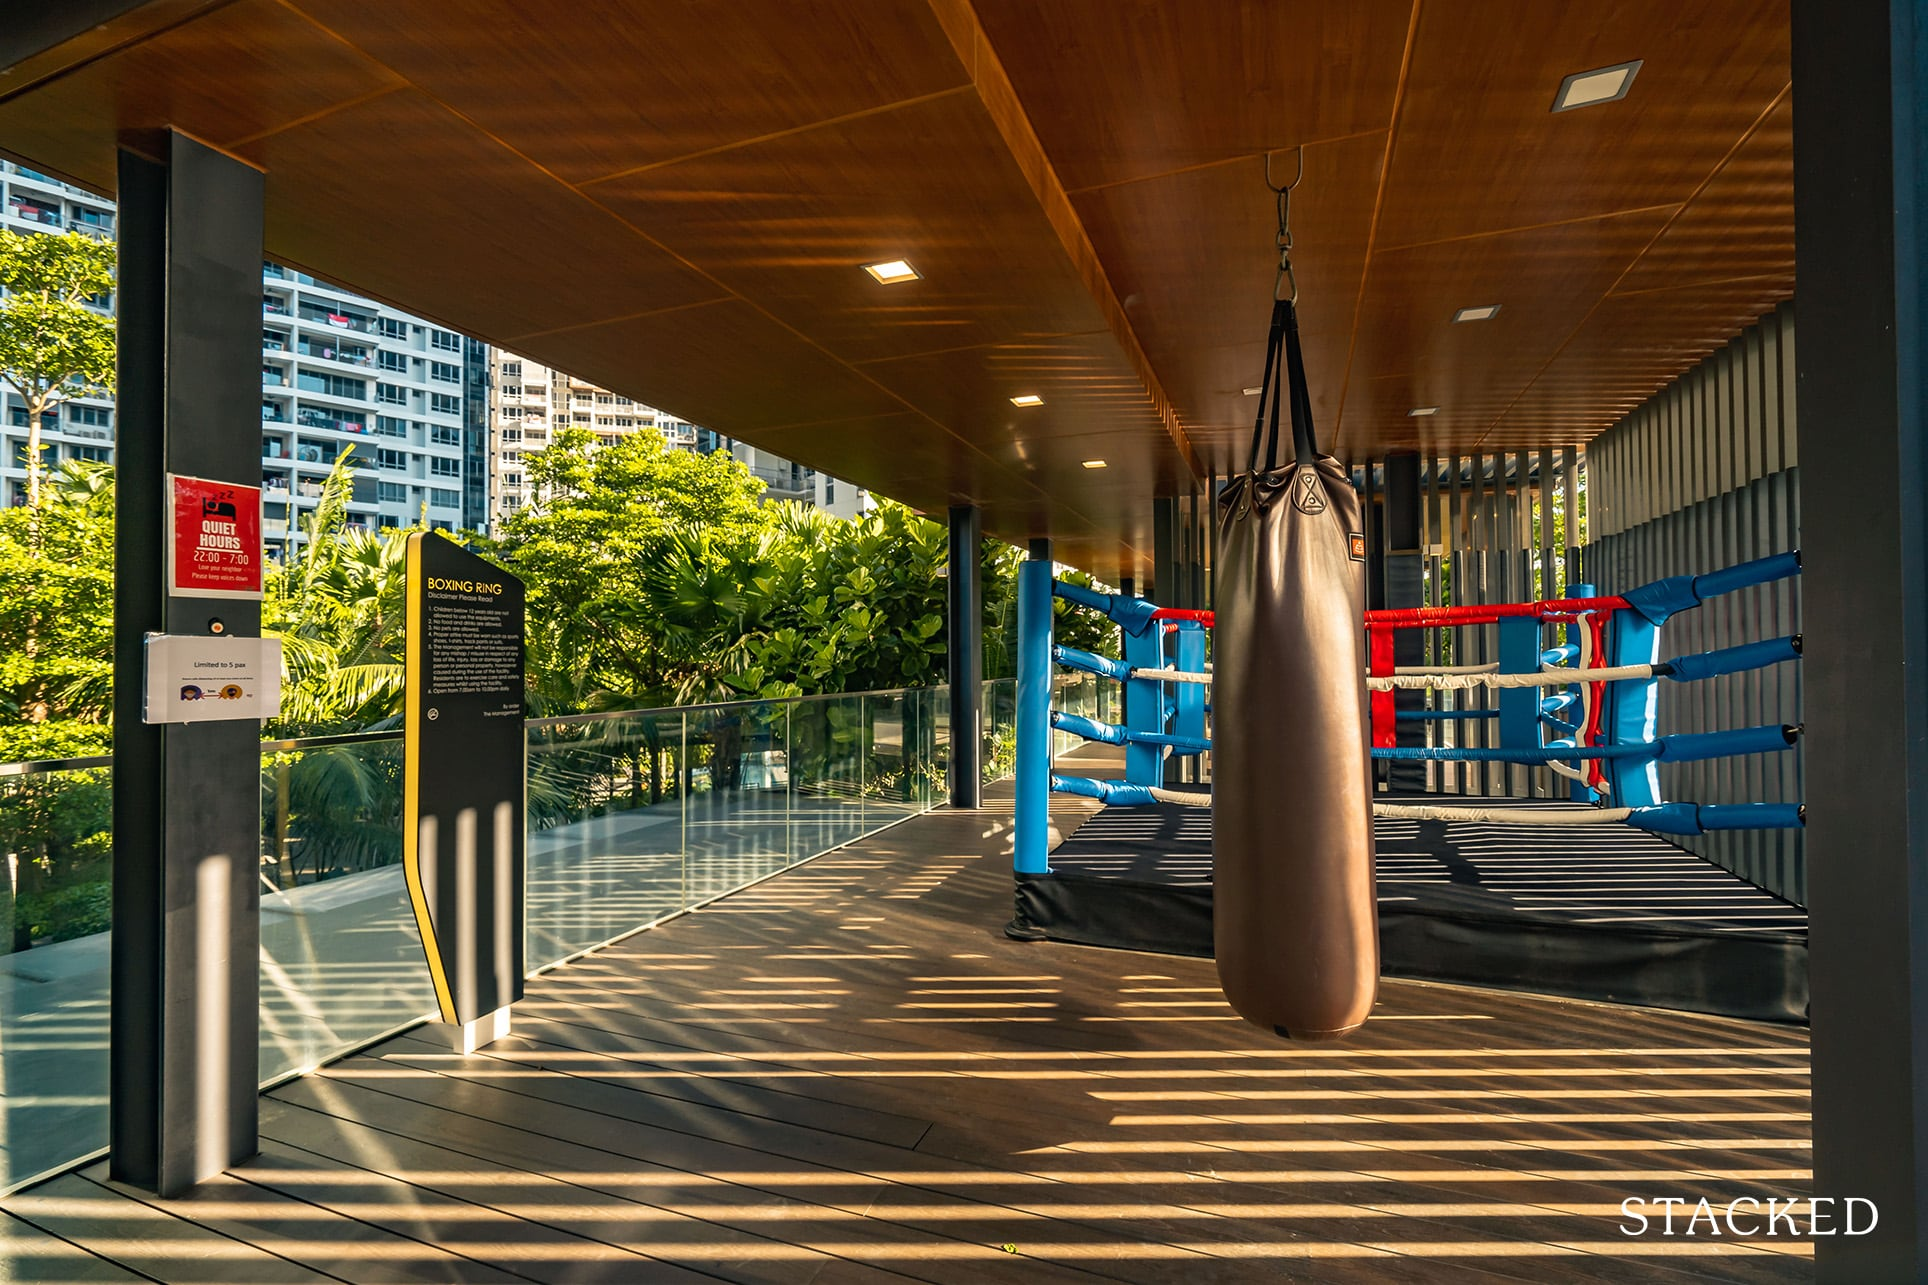 high park residences boxing ring